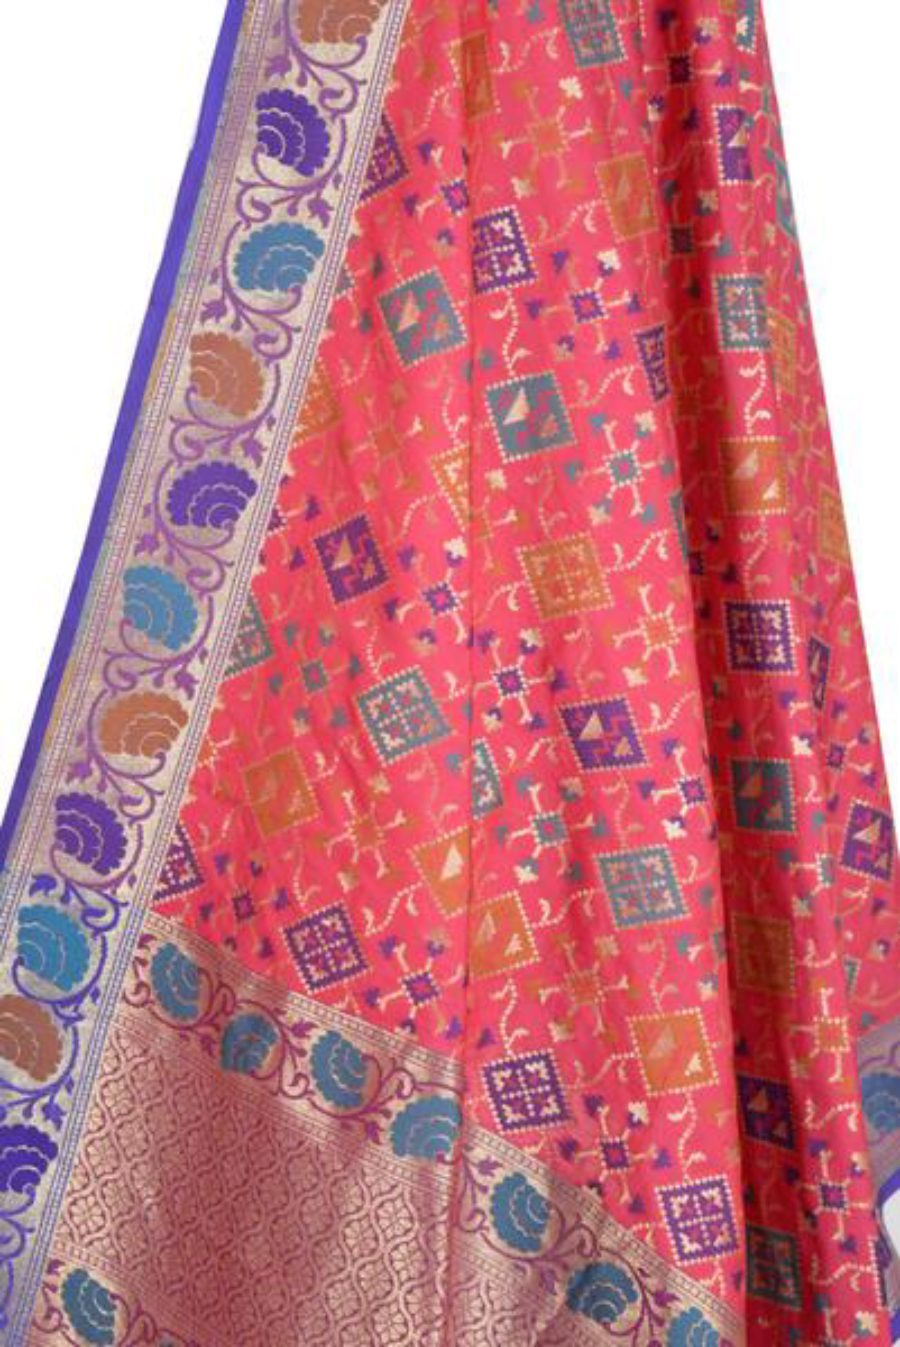 Strawberry Pink Banarasi Dupatta with Rajkoti pattern and paithani border (2) Closeup